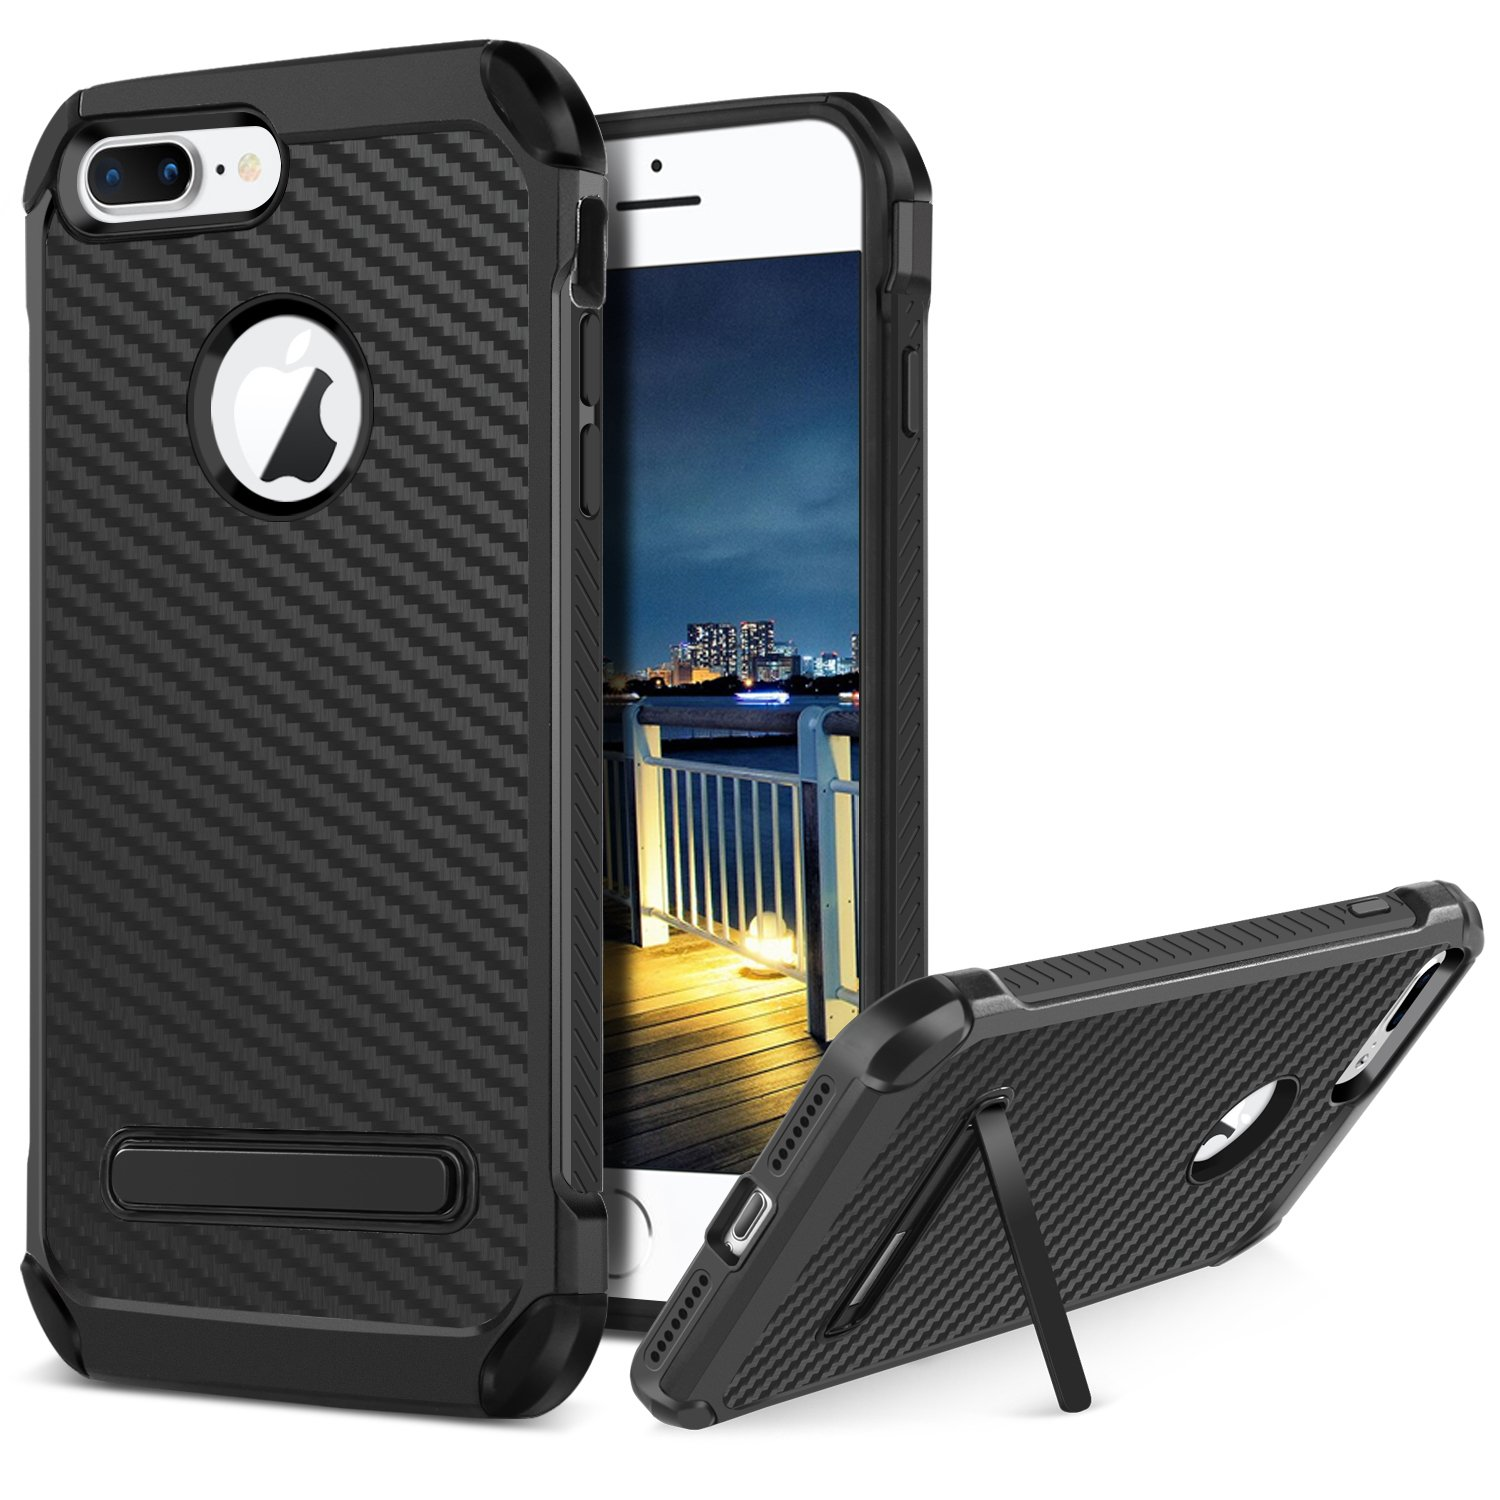 BENTOBEN Phone Case for Apple iPhone 8 Plus, Protective Shockproof Kickstand Cell Phone Case, Slim 2 In 1 Heavy Duty Hybrid Hard PC Cover Soft TPU Bumper Carbon Fiber Texture Phone Case Cover - Black